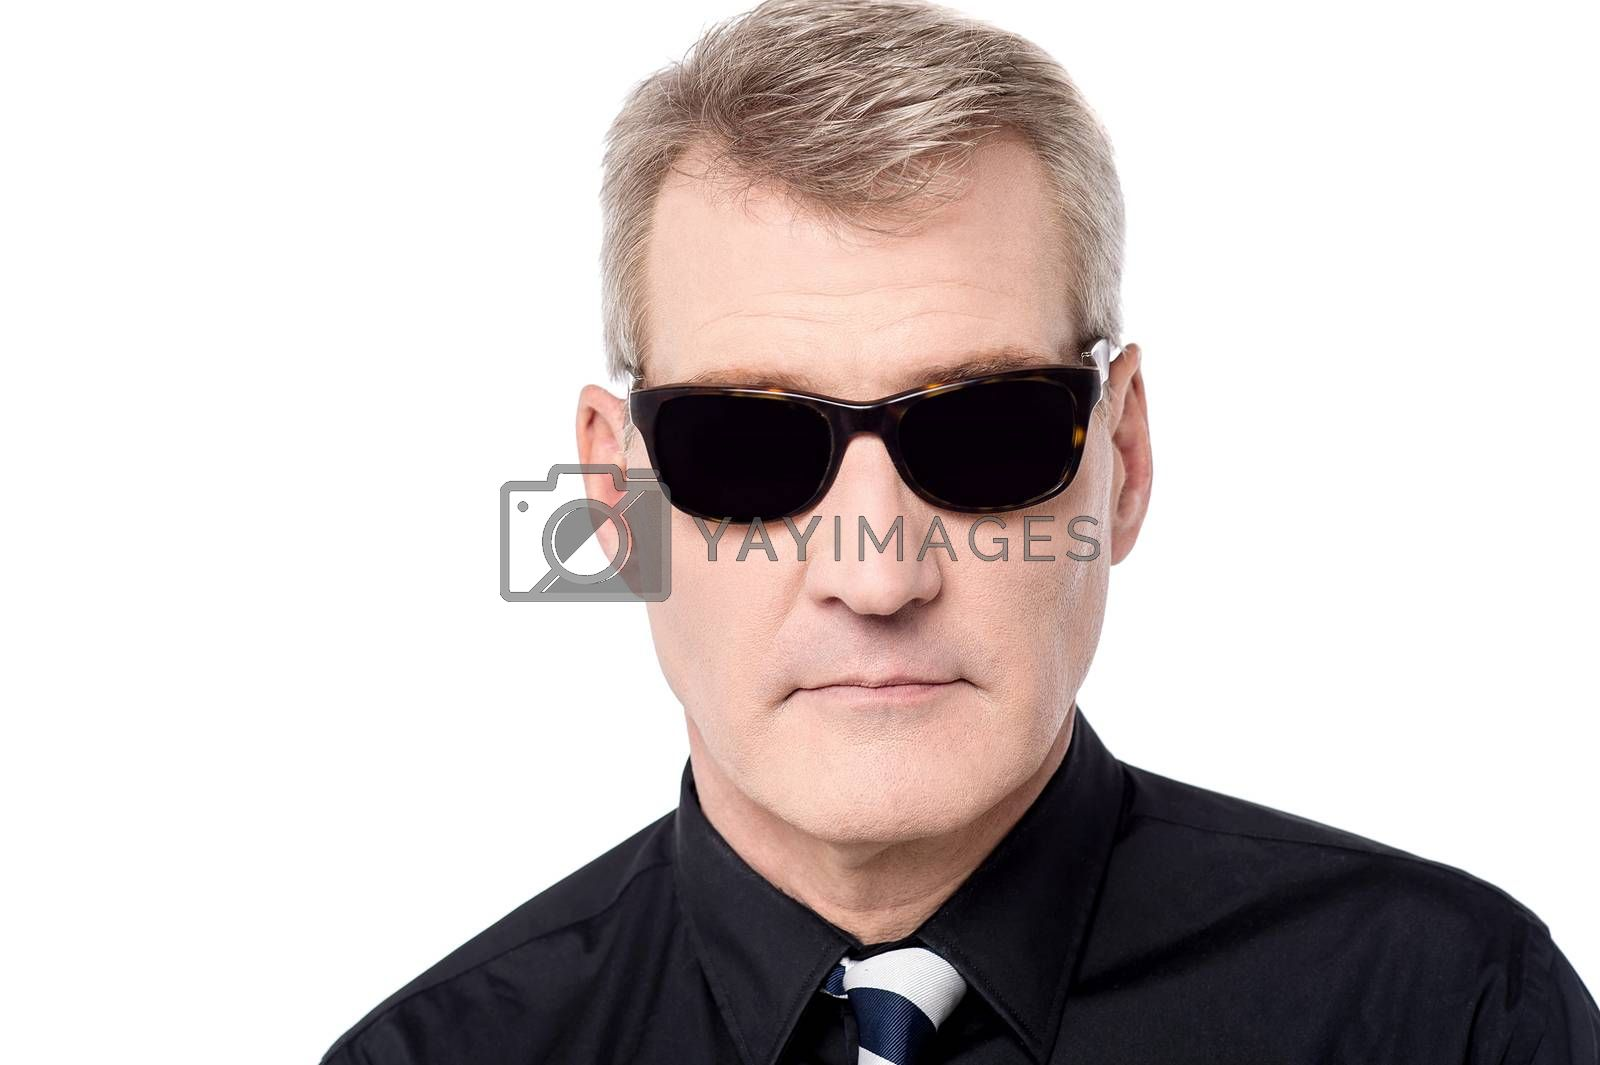 Handsome man posing to camera with sunglasses